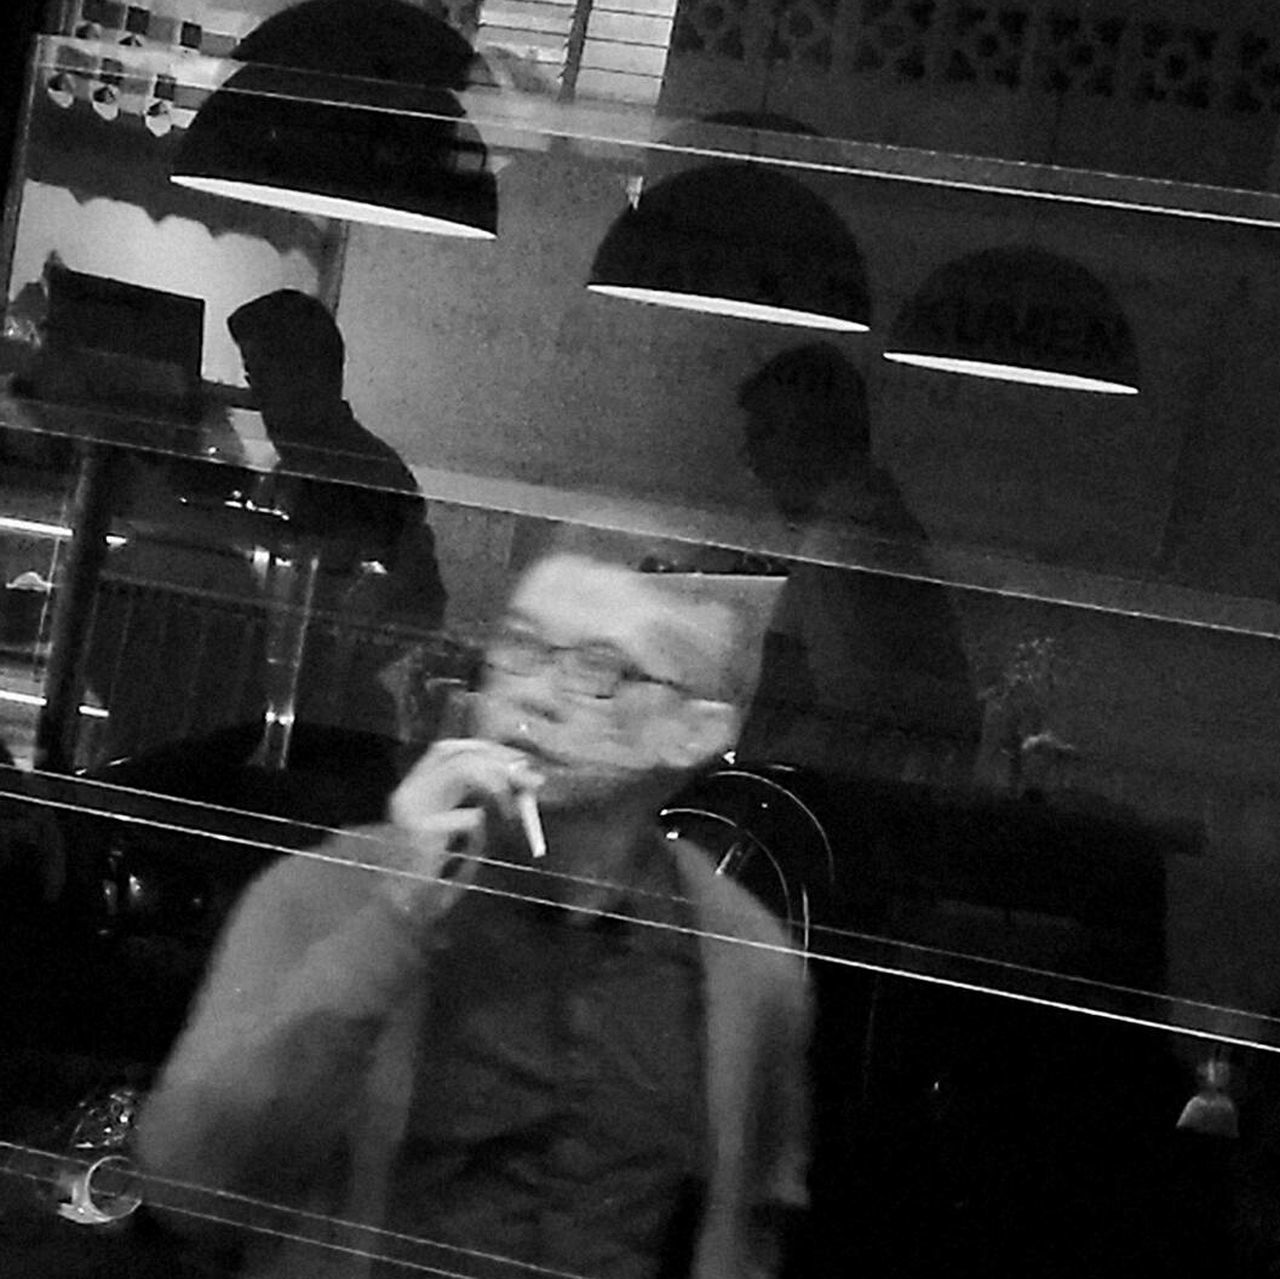 Coffee Smoking Reflection_collection Reflection Photography Reflections Reflection In The Window Street Photo Street Photography Streetphoto EyeEm EyeEmNewHere EyeEmBestPics EyeEm Gallery Eyeemphotography EyeEm Best Shots People Blackandwhitephotography Black & White Photography Blackandwhite Black And White Streetphotography_bw Streetphotography Streetphoto_bw Streetportrait Streetphotographer Monochrome